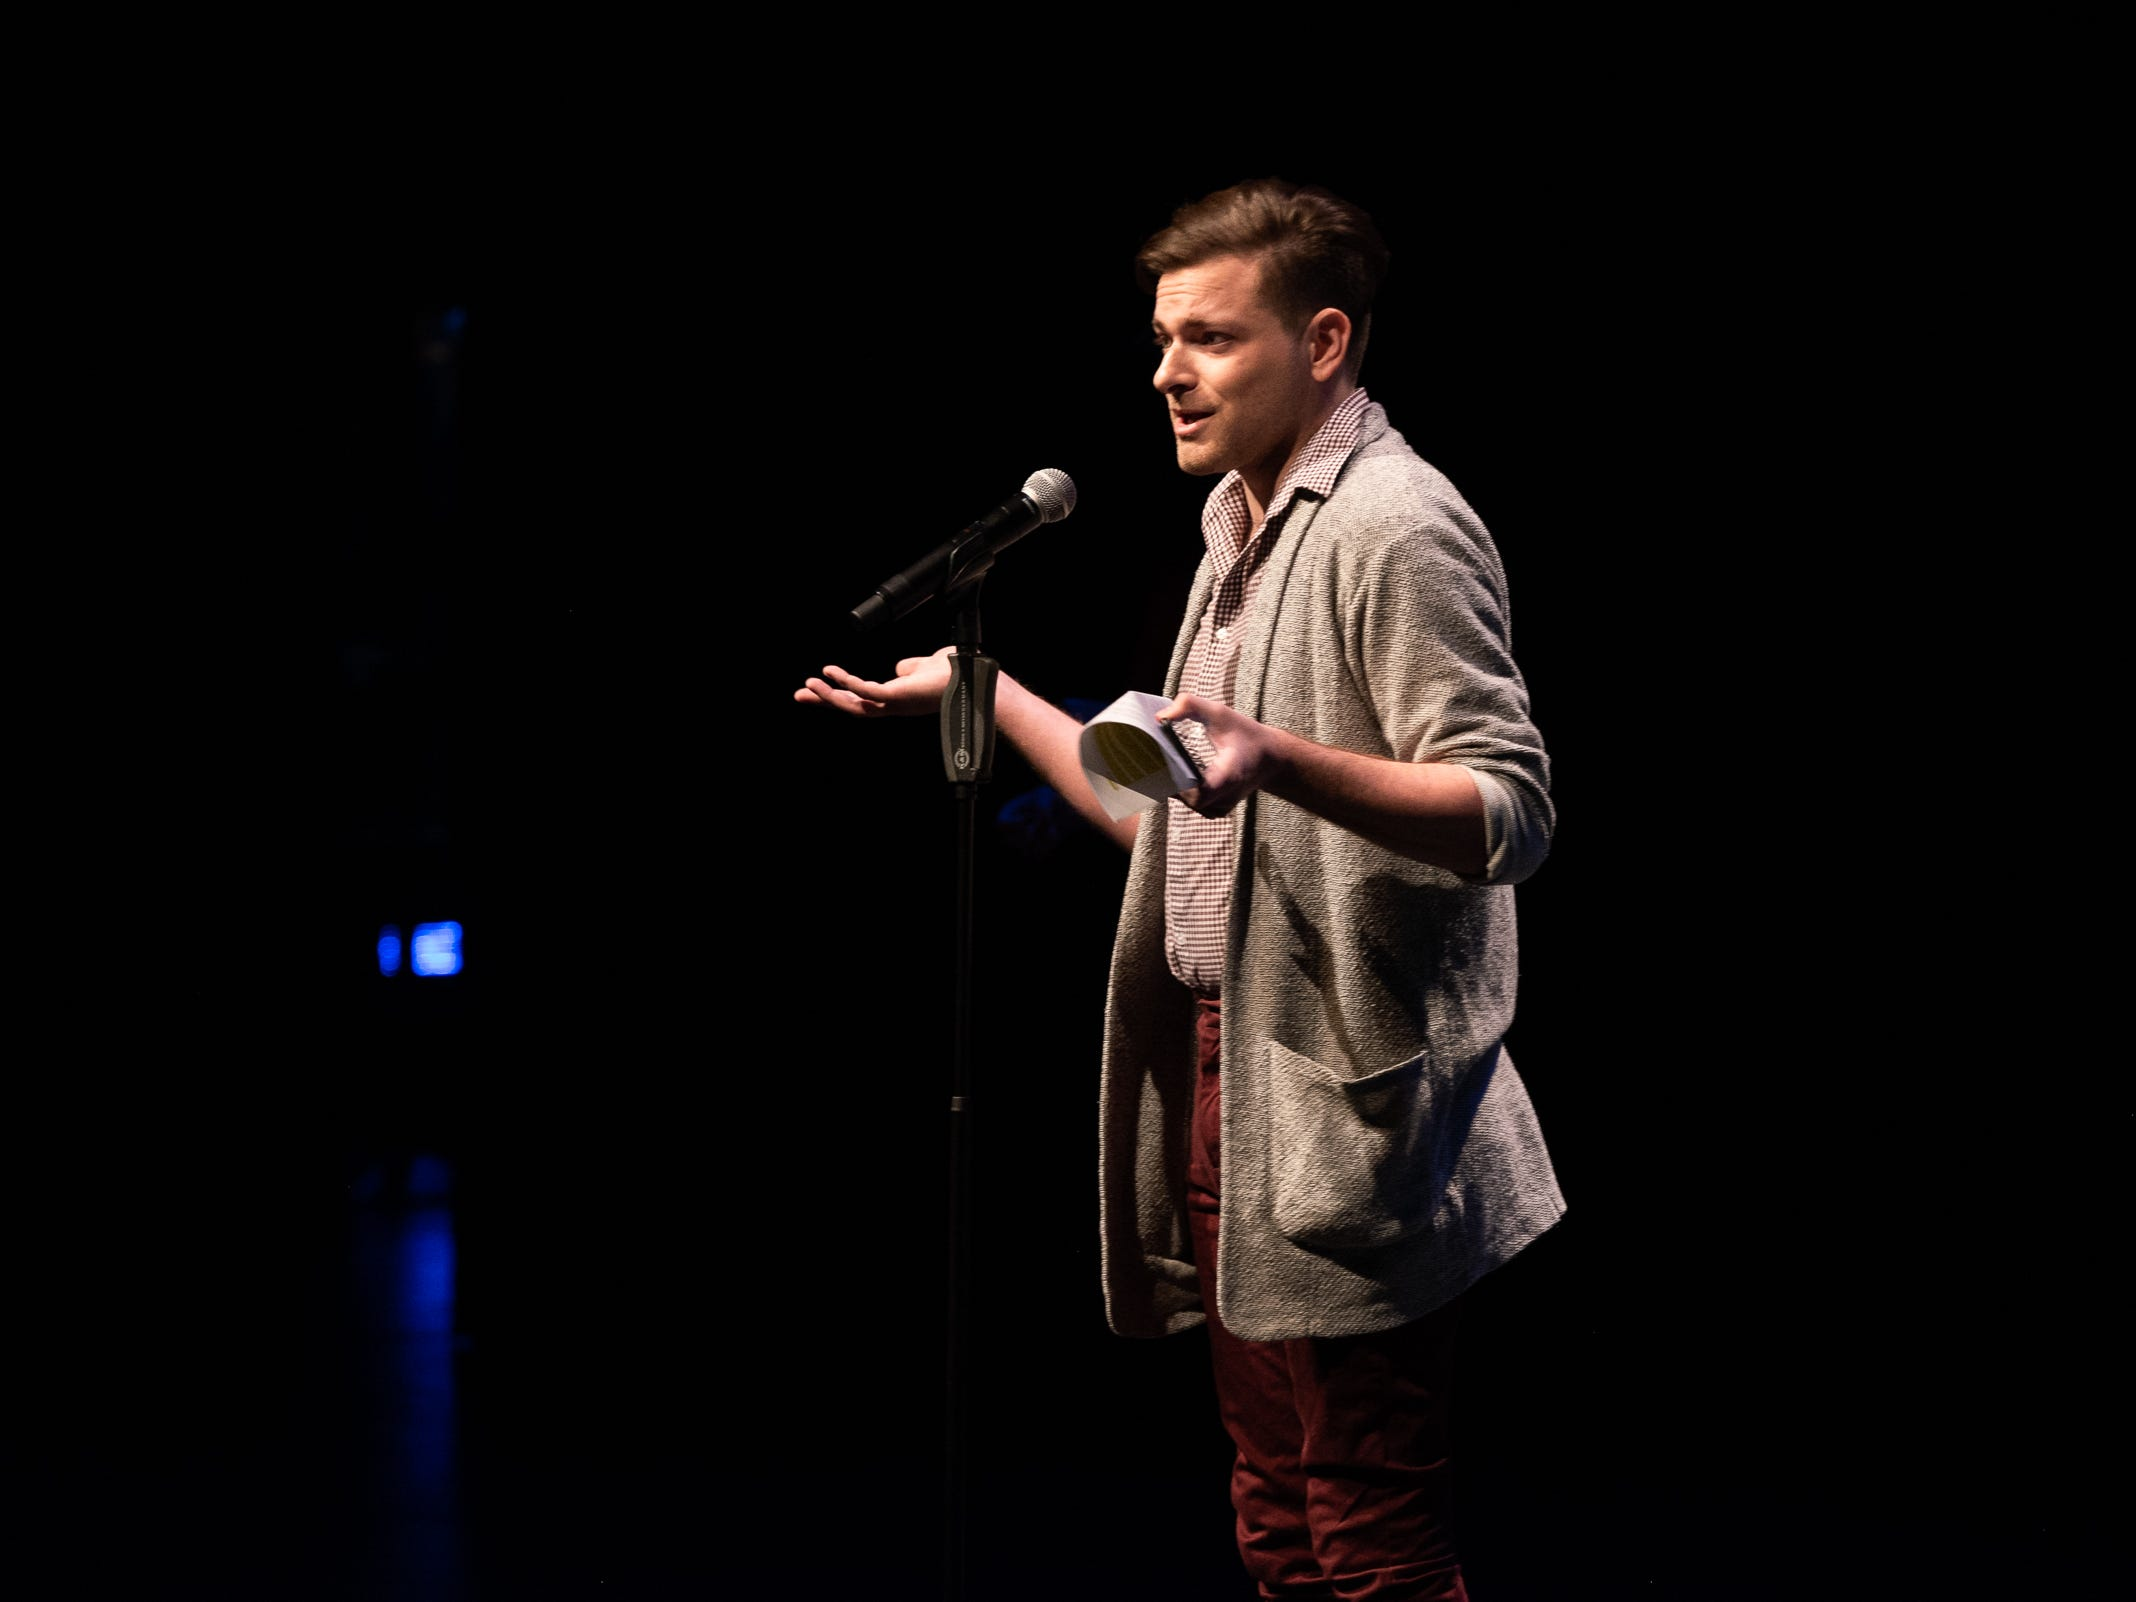 """Co-host Garrett Mitchell warms up the crowd and announces the next storyteller during """"Arizona Storytellers: Romance or Not"""" at the Scottsdale Center for Performing Arts on Wednesday, Feb. 13, 2019."""